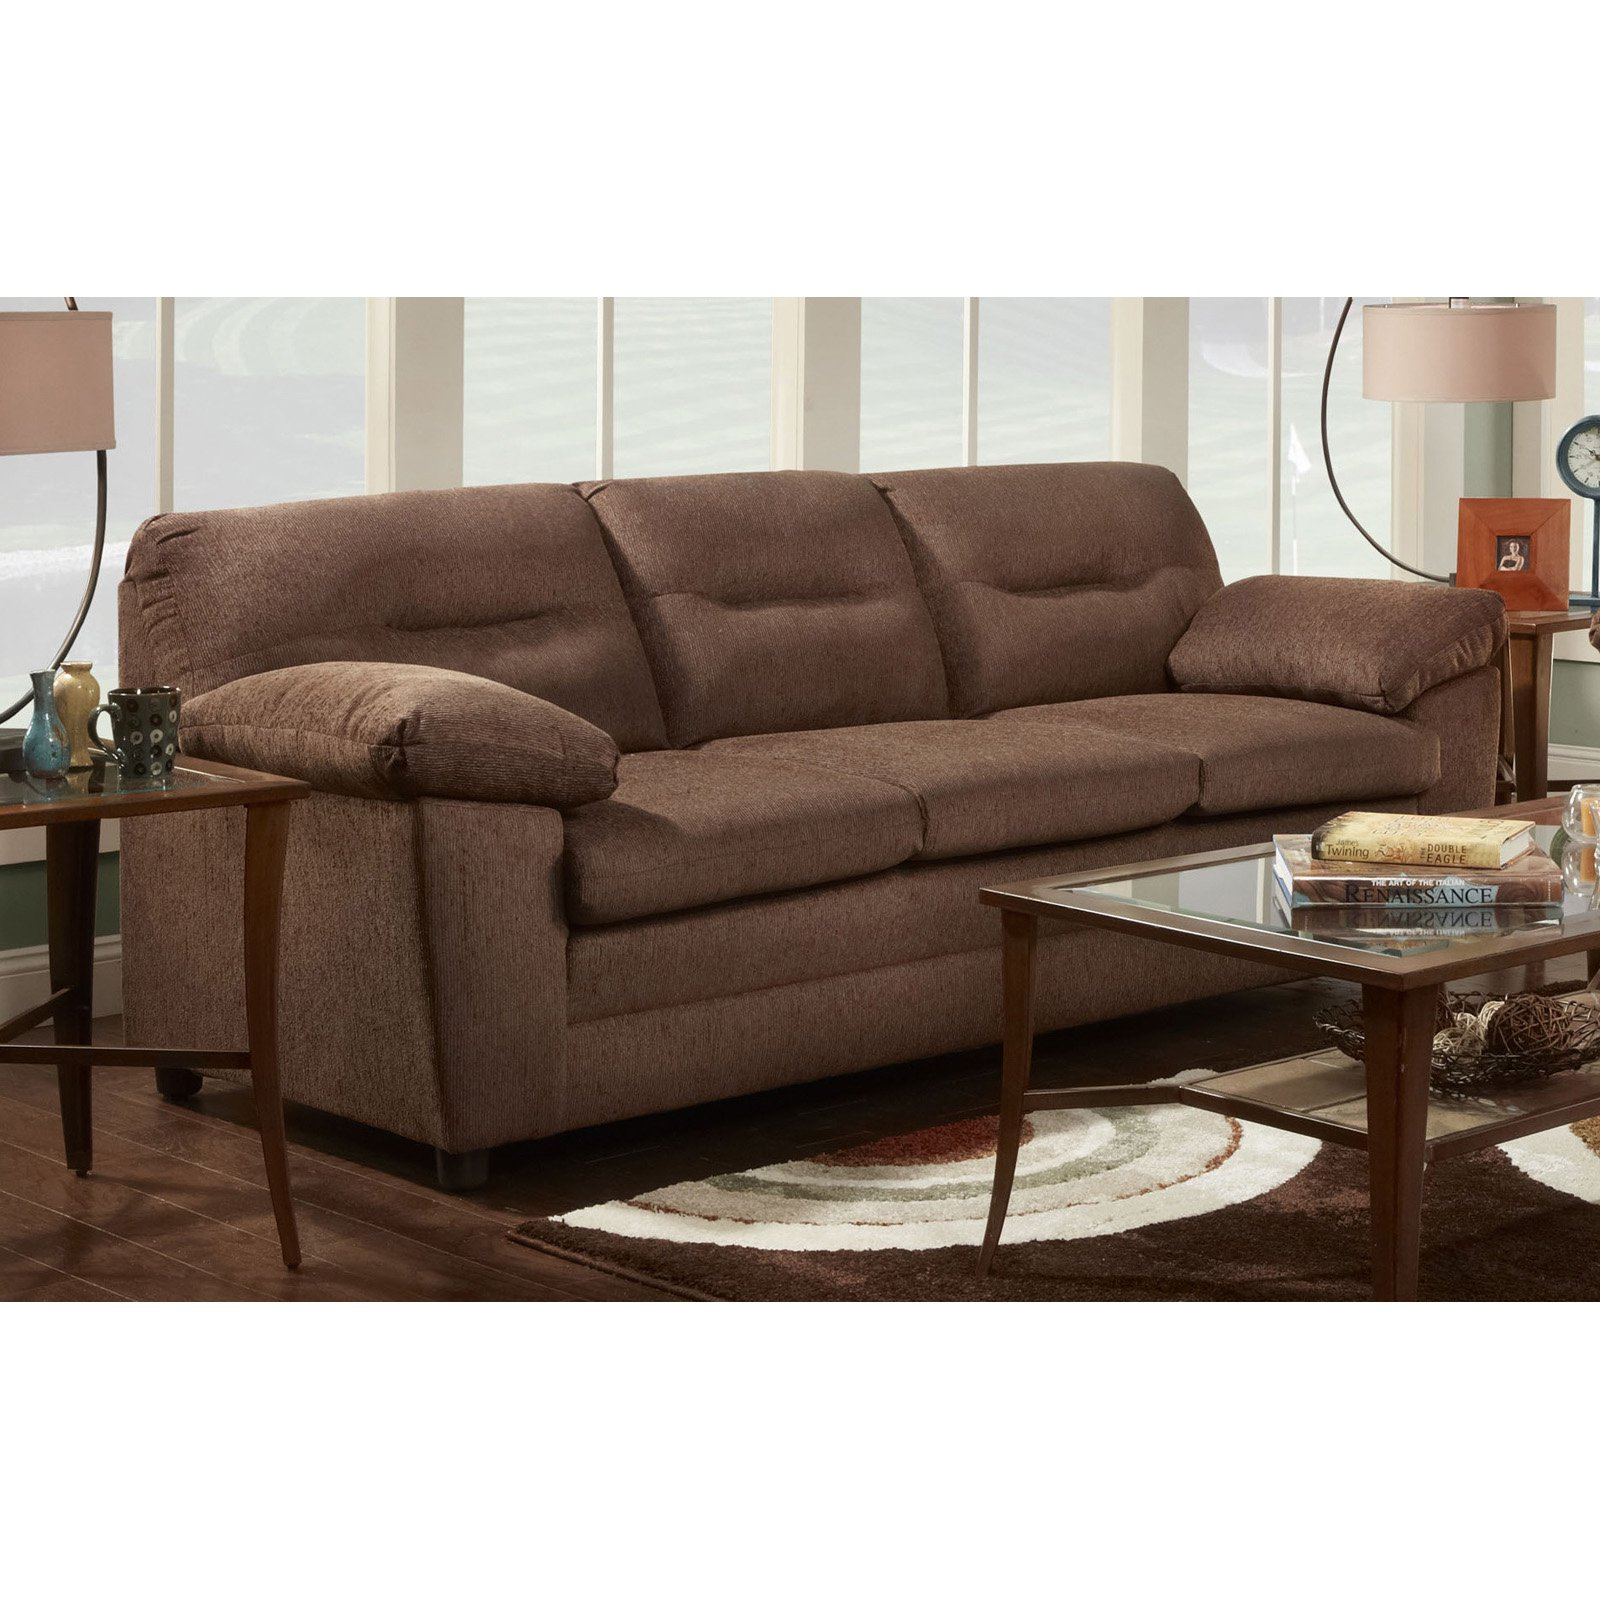 Stressless Furniture Market Harborough Sofas Northampton Home Decor 88